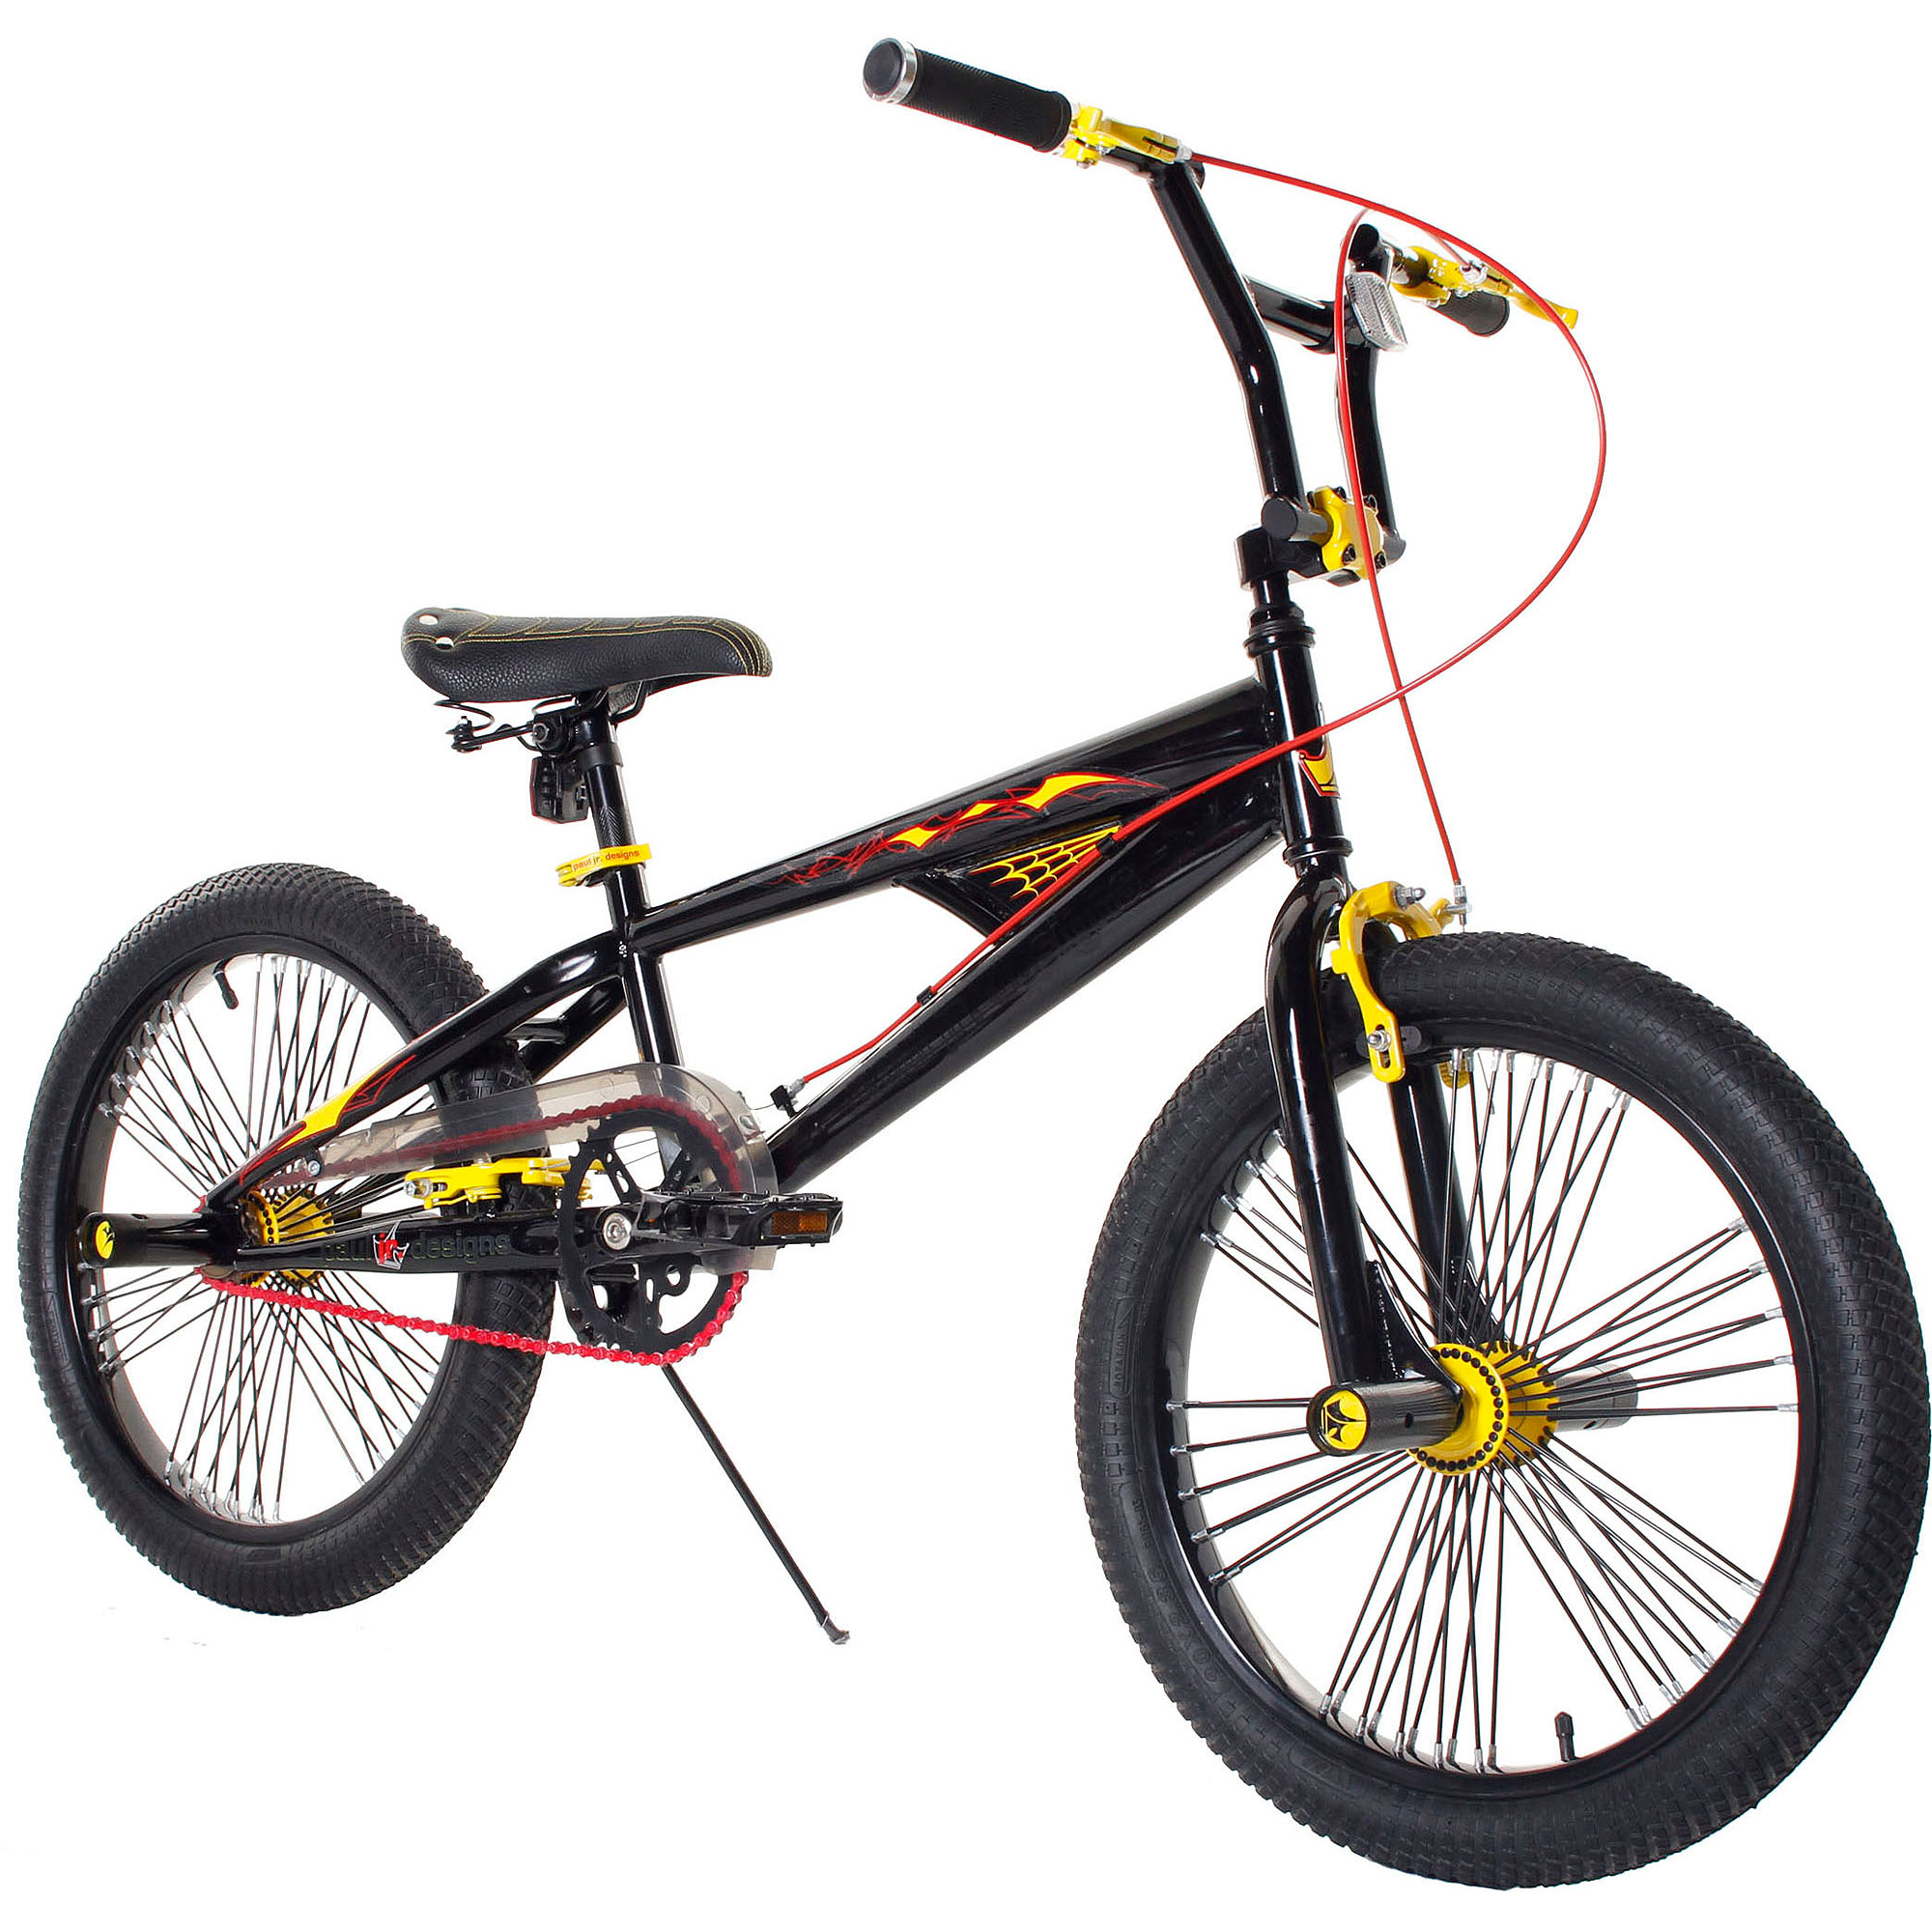 "Paul Jr. Designs 20"" Anti-Venom Freestyle Bicycle"